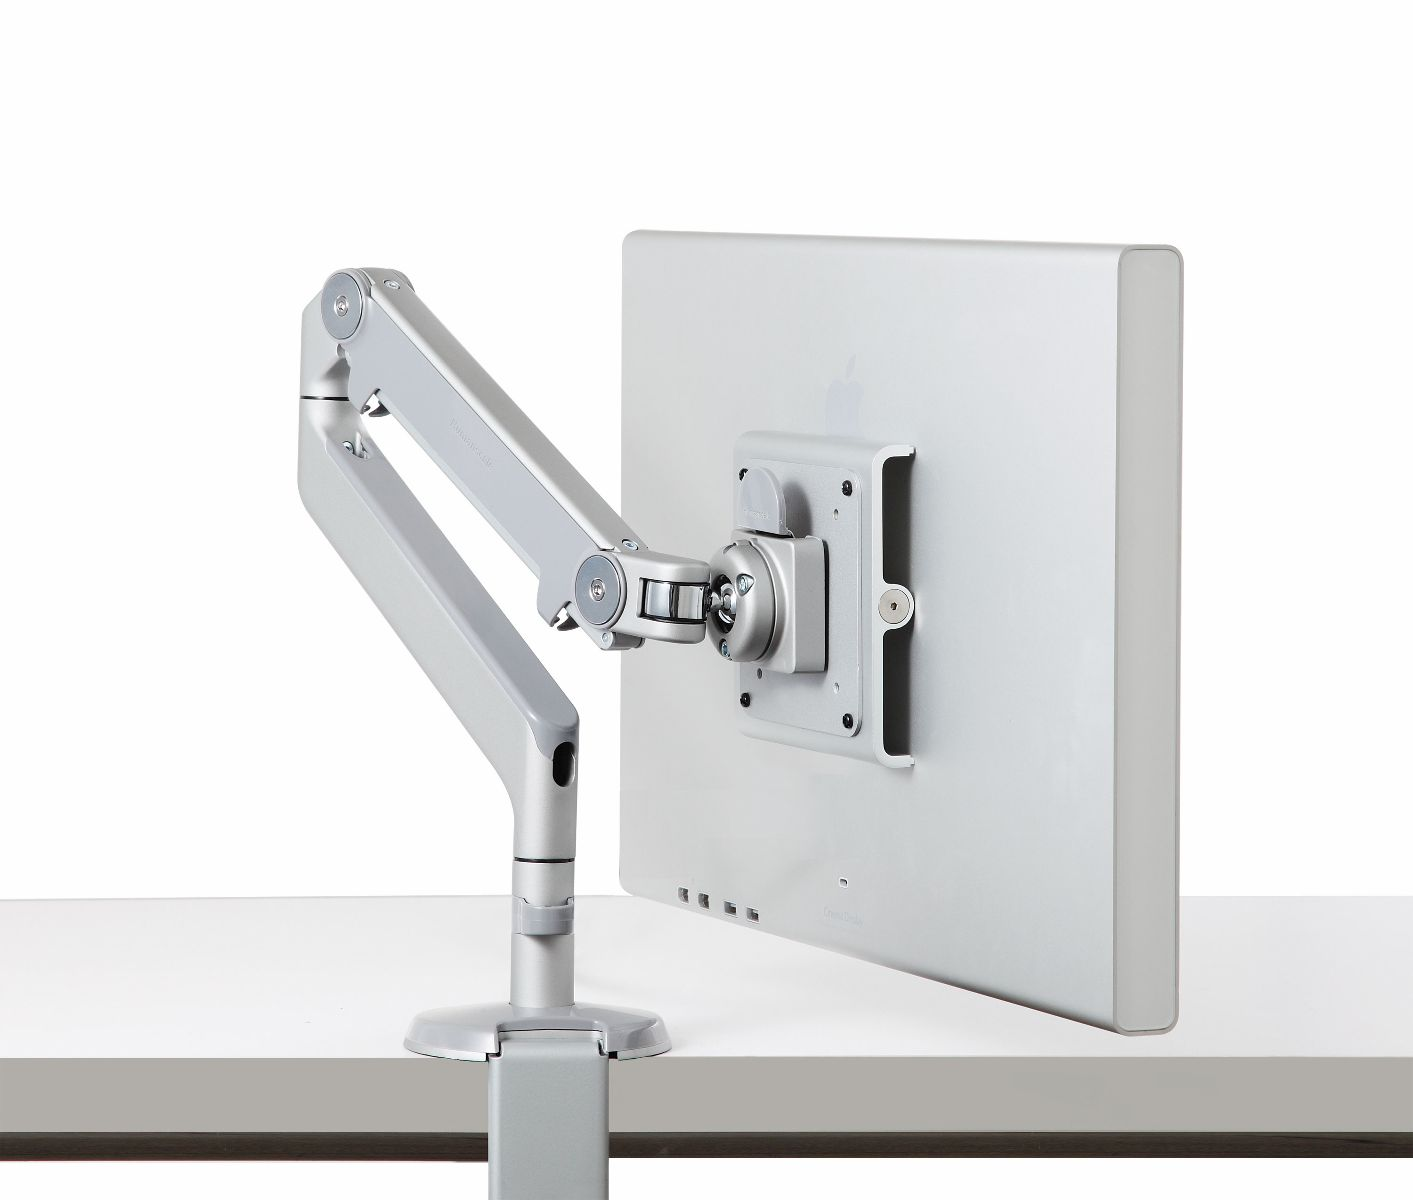 Humanscale M2 Monitor Arm Ergonomic Seating Monitor Arms